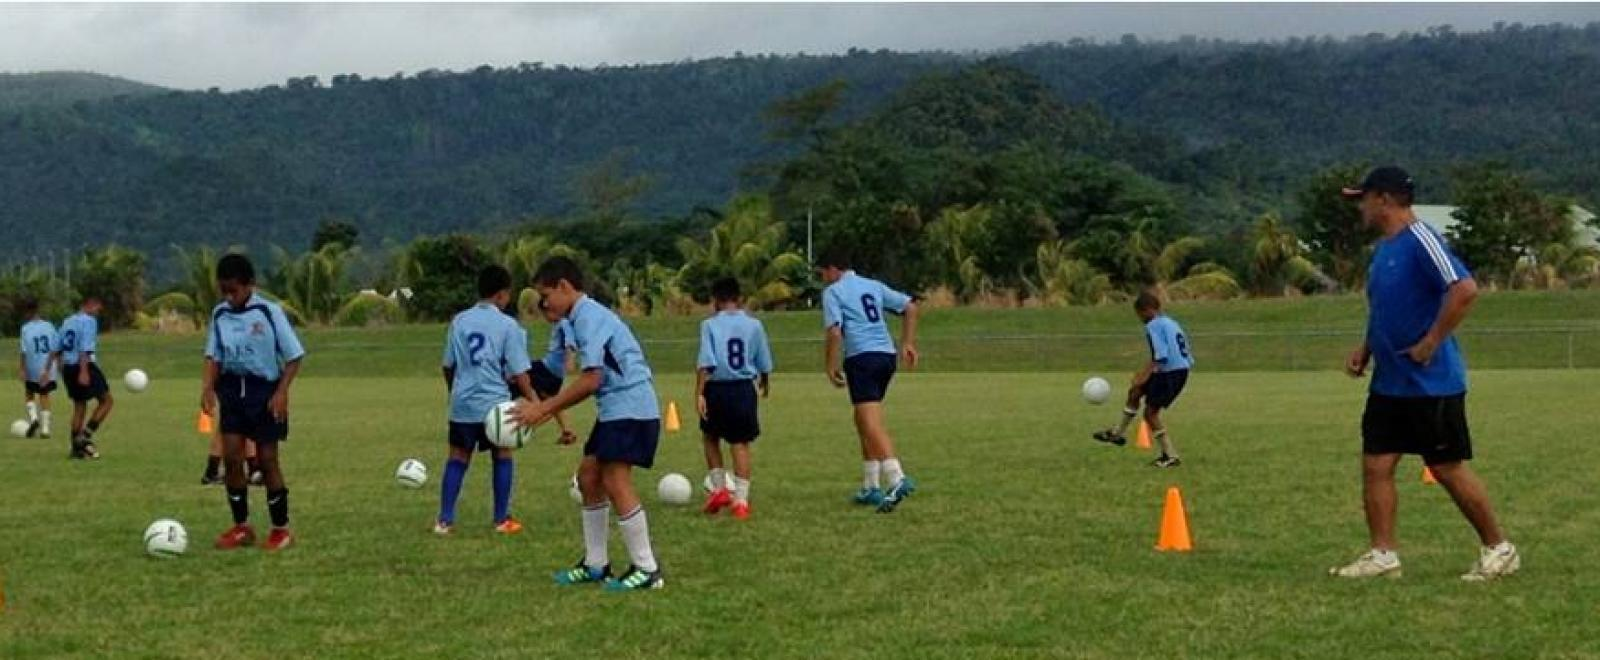 Children do football drills during a training session led by a Projects Abroad volunteer sports coach in Samoa.